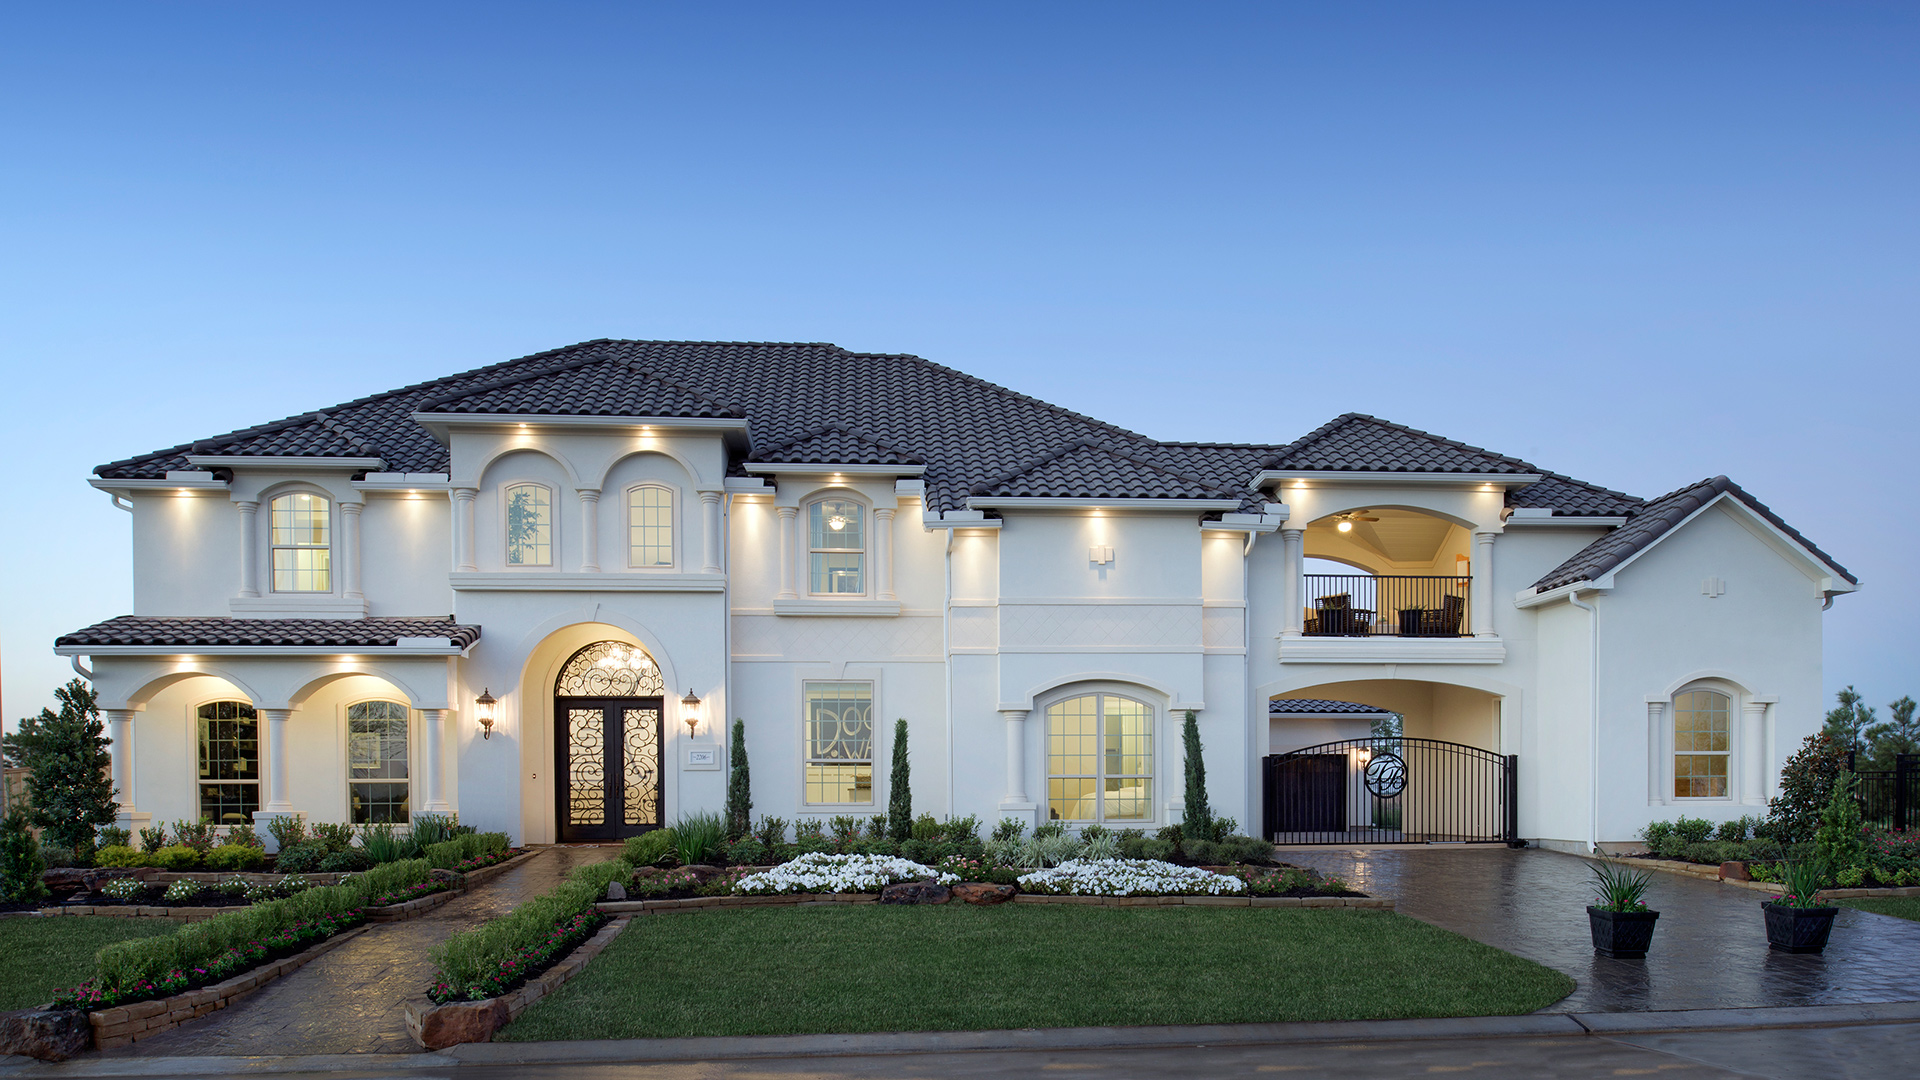 The Venticello Mediterranean Model - Cane Island - Katy, TX